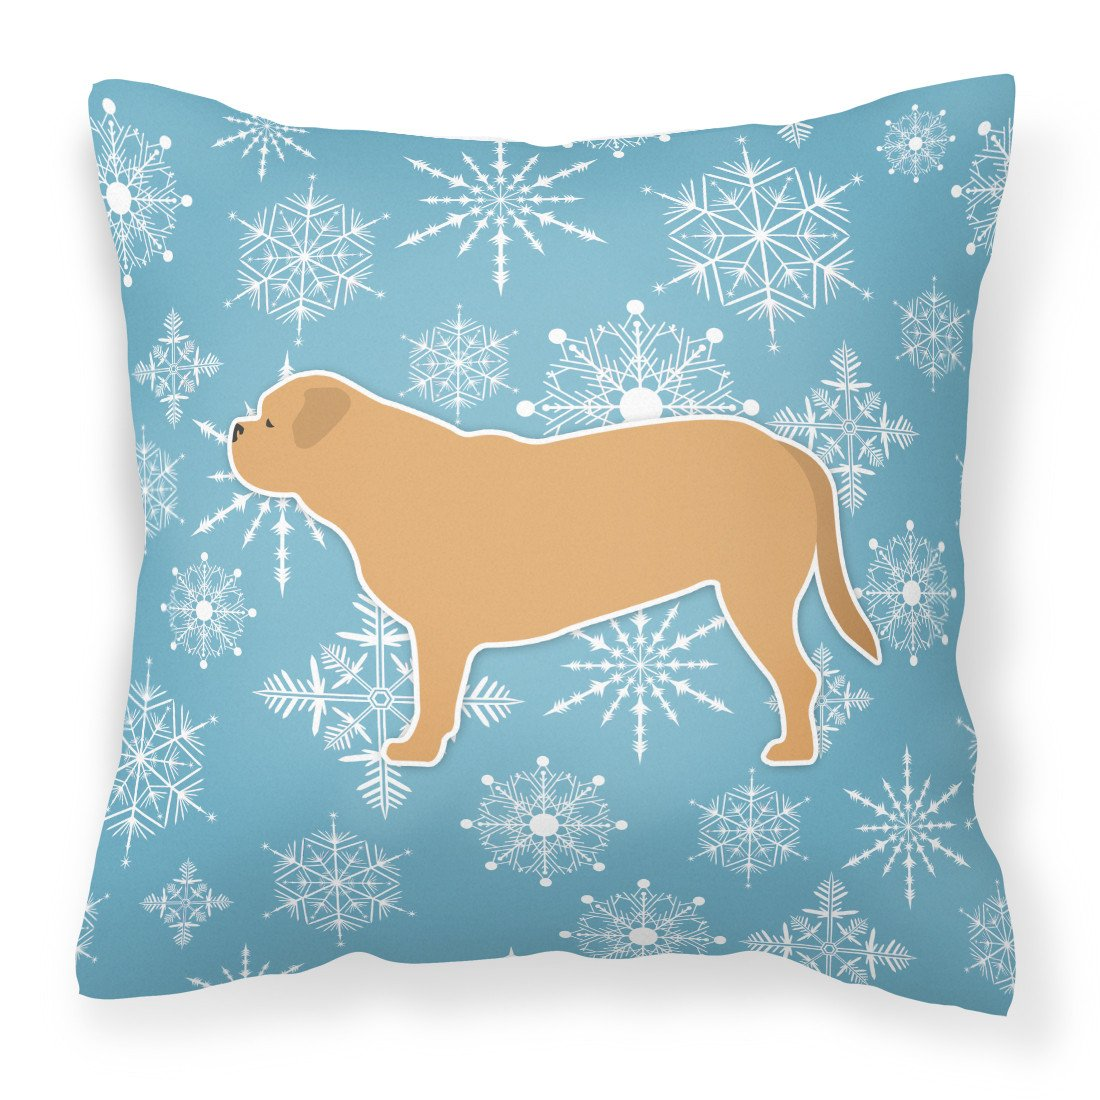 Winter Snowflake Dogue de Bordeaux Fabric Decorative Pillow BB3570PW1818 by Caroline's Treasures